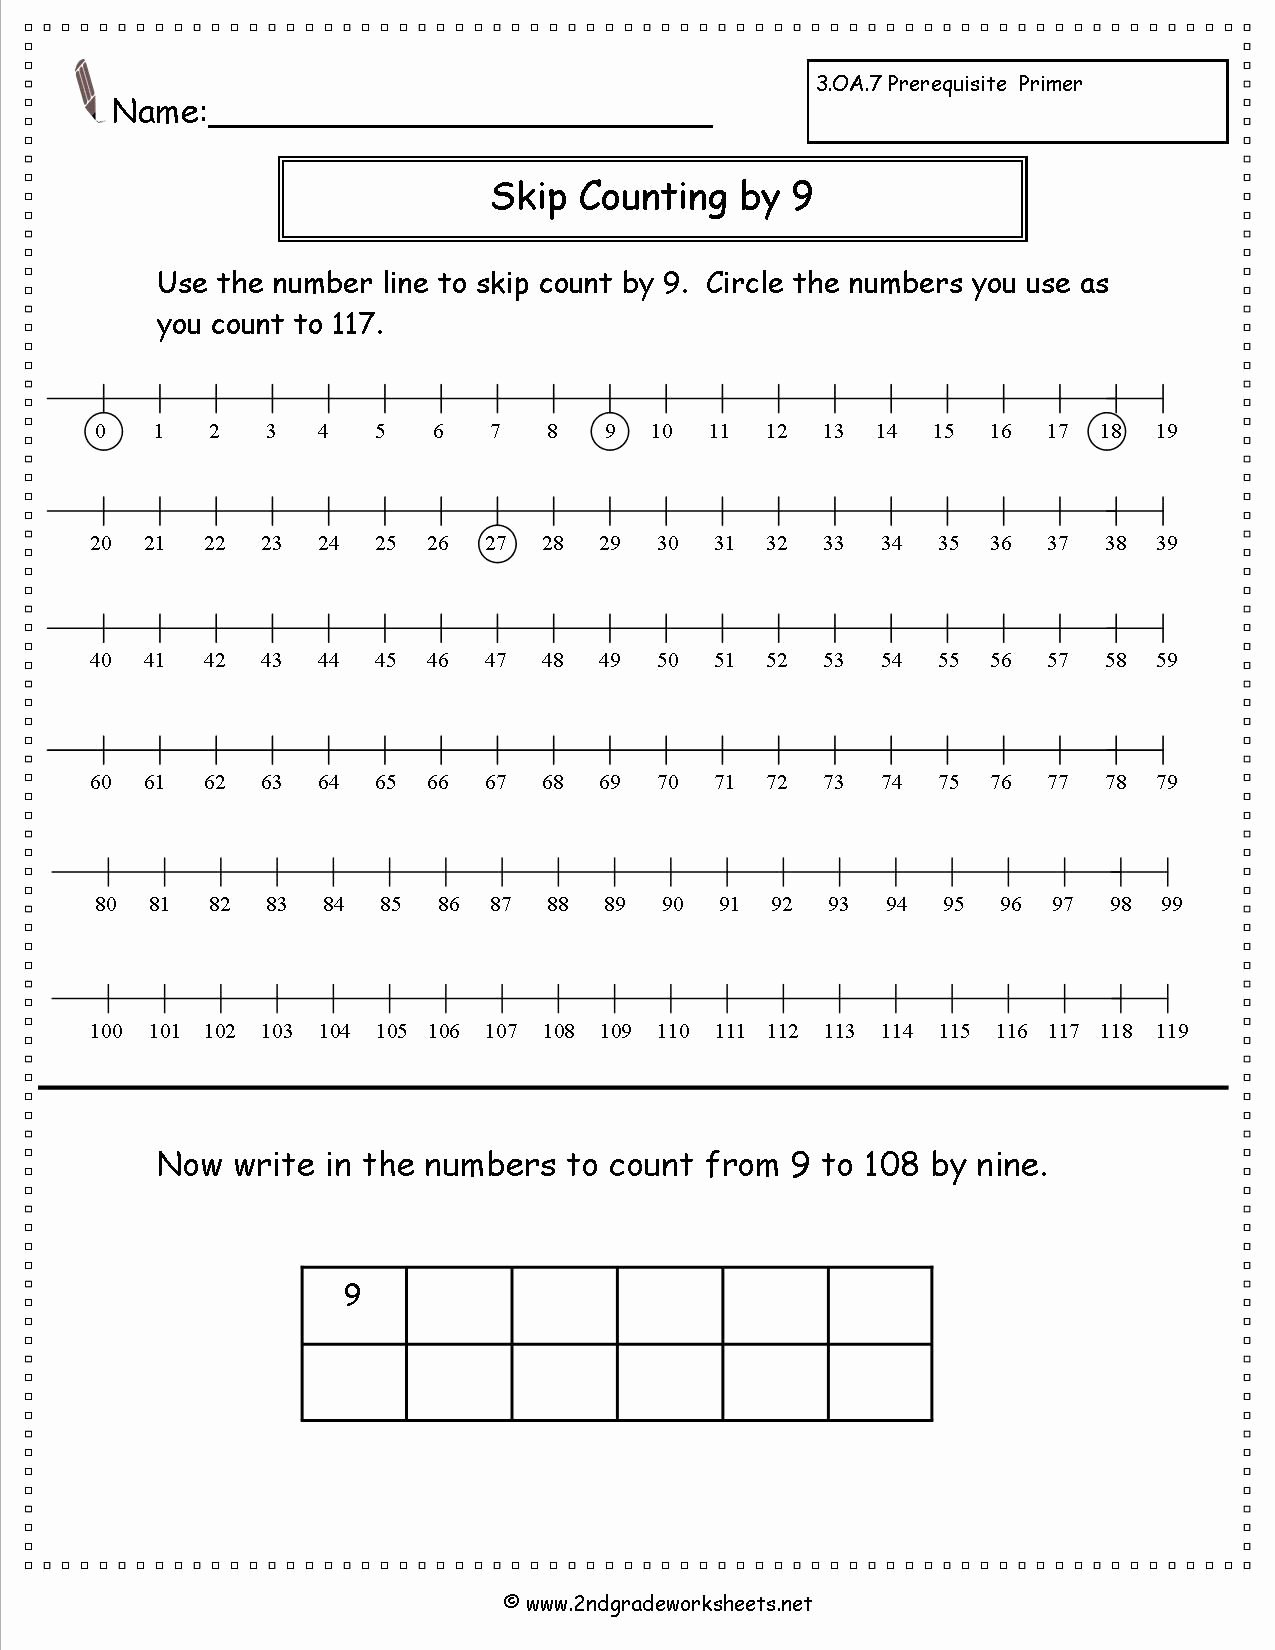 Skip Counting Multiplication Worksheets Lovely Free Skip Counting Worksheets Multiple Styles All Single